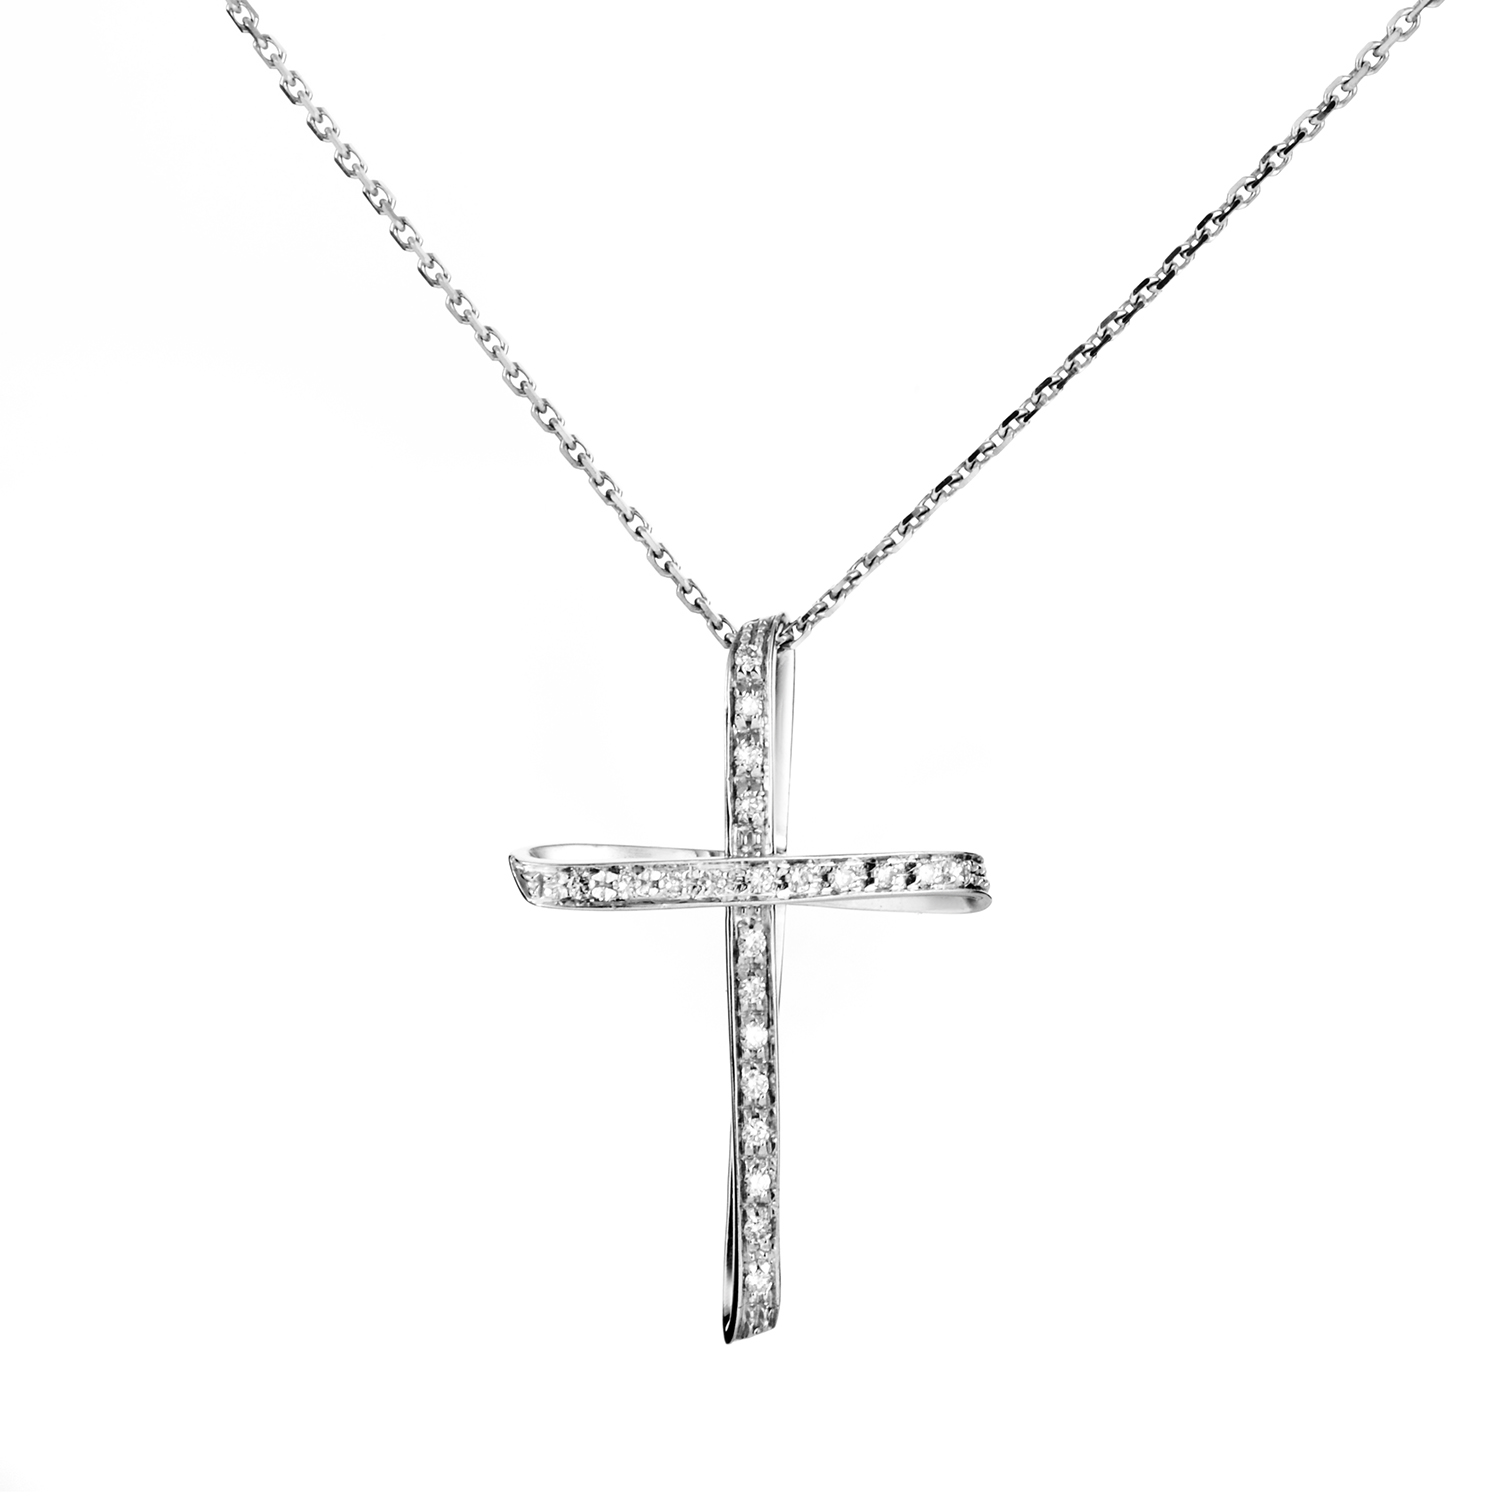 Women's 18K White Gold Diamond Cross Pendant Necklace